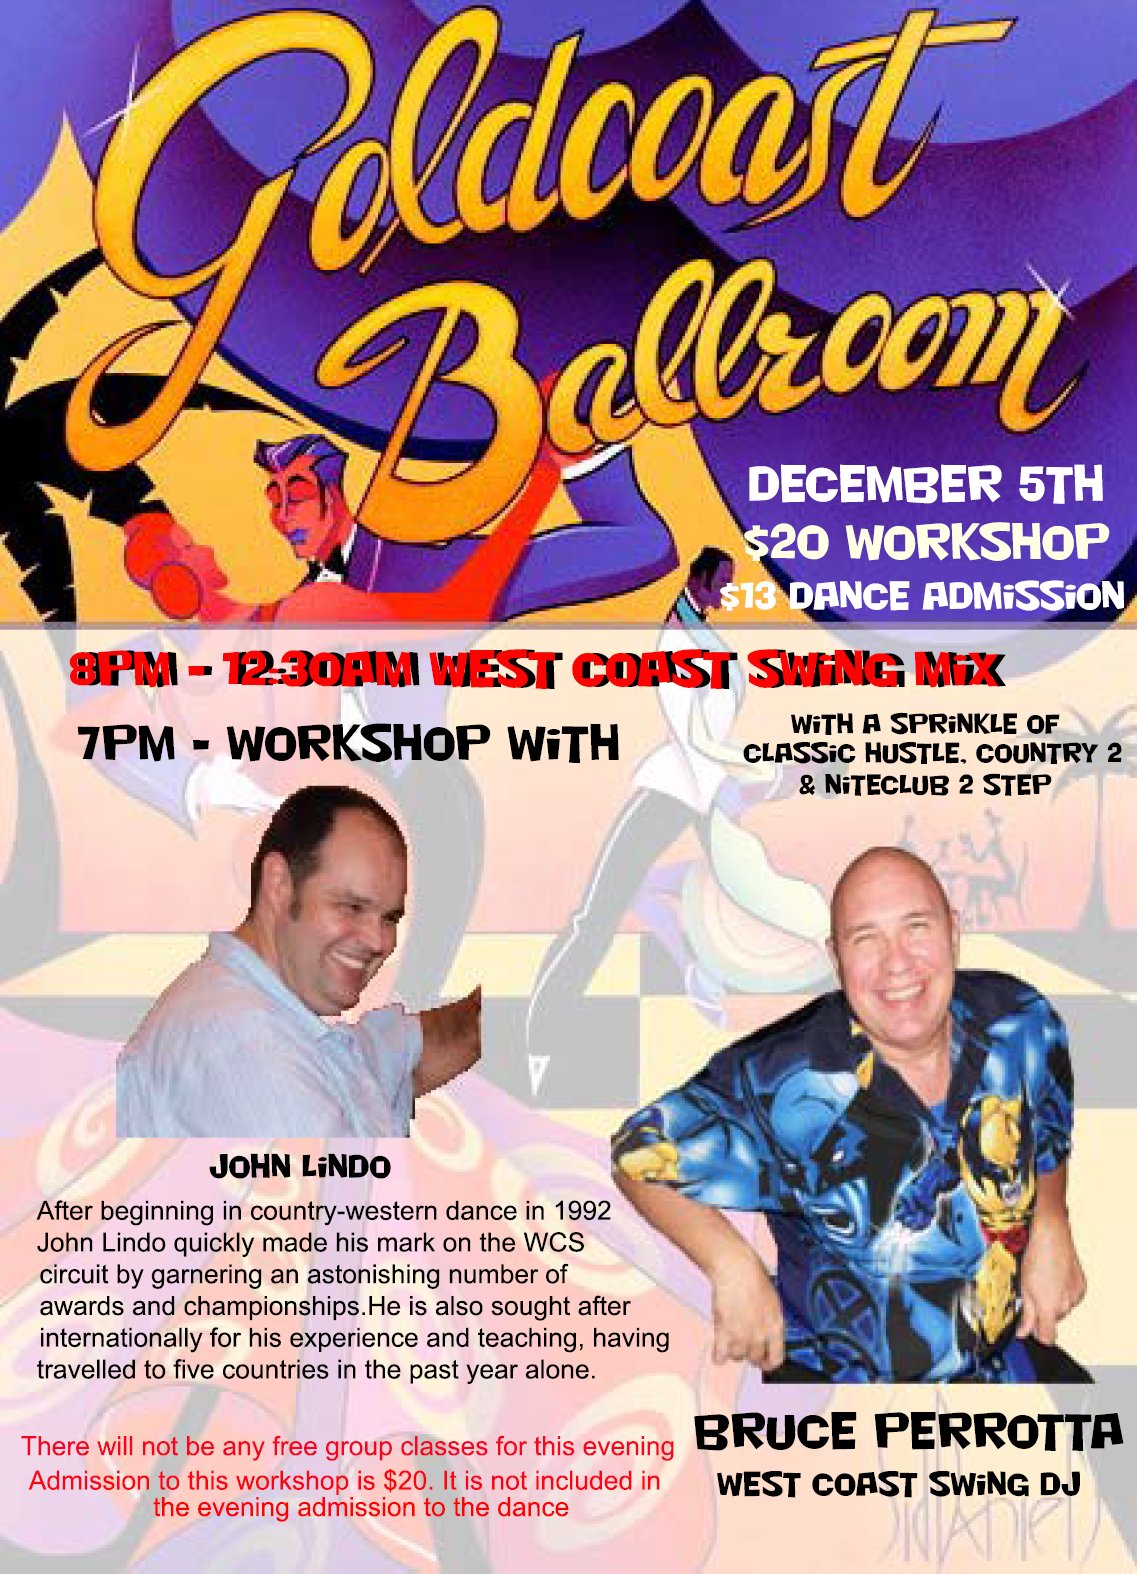 Click to Print: Special West Coast Swing Night at Goldcoast Ballroom - December 5, 2014!